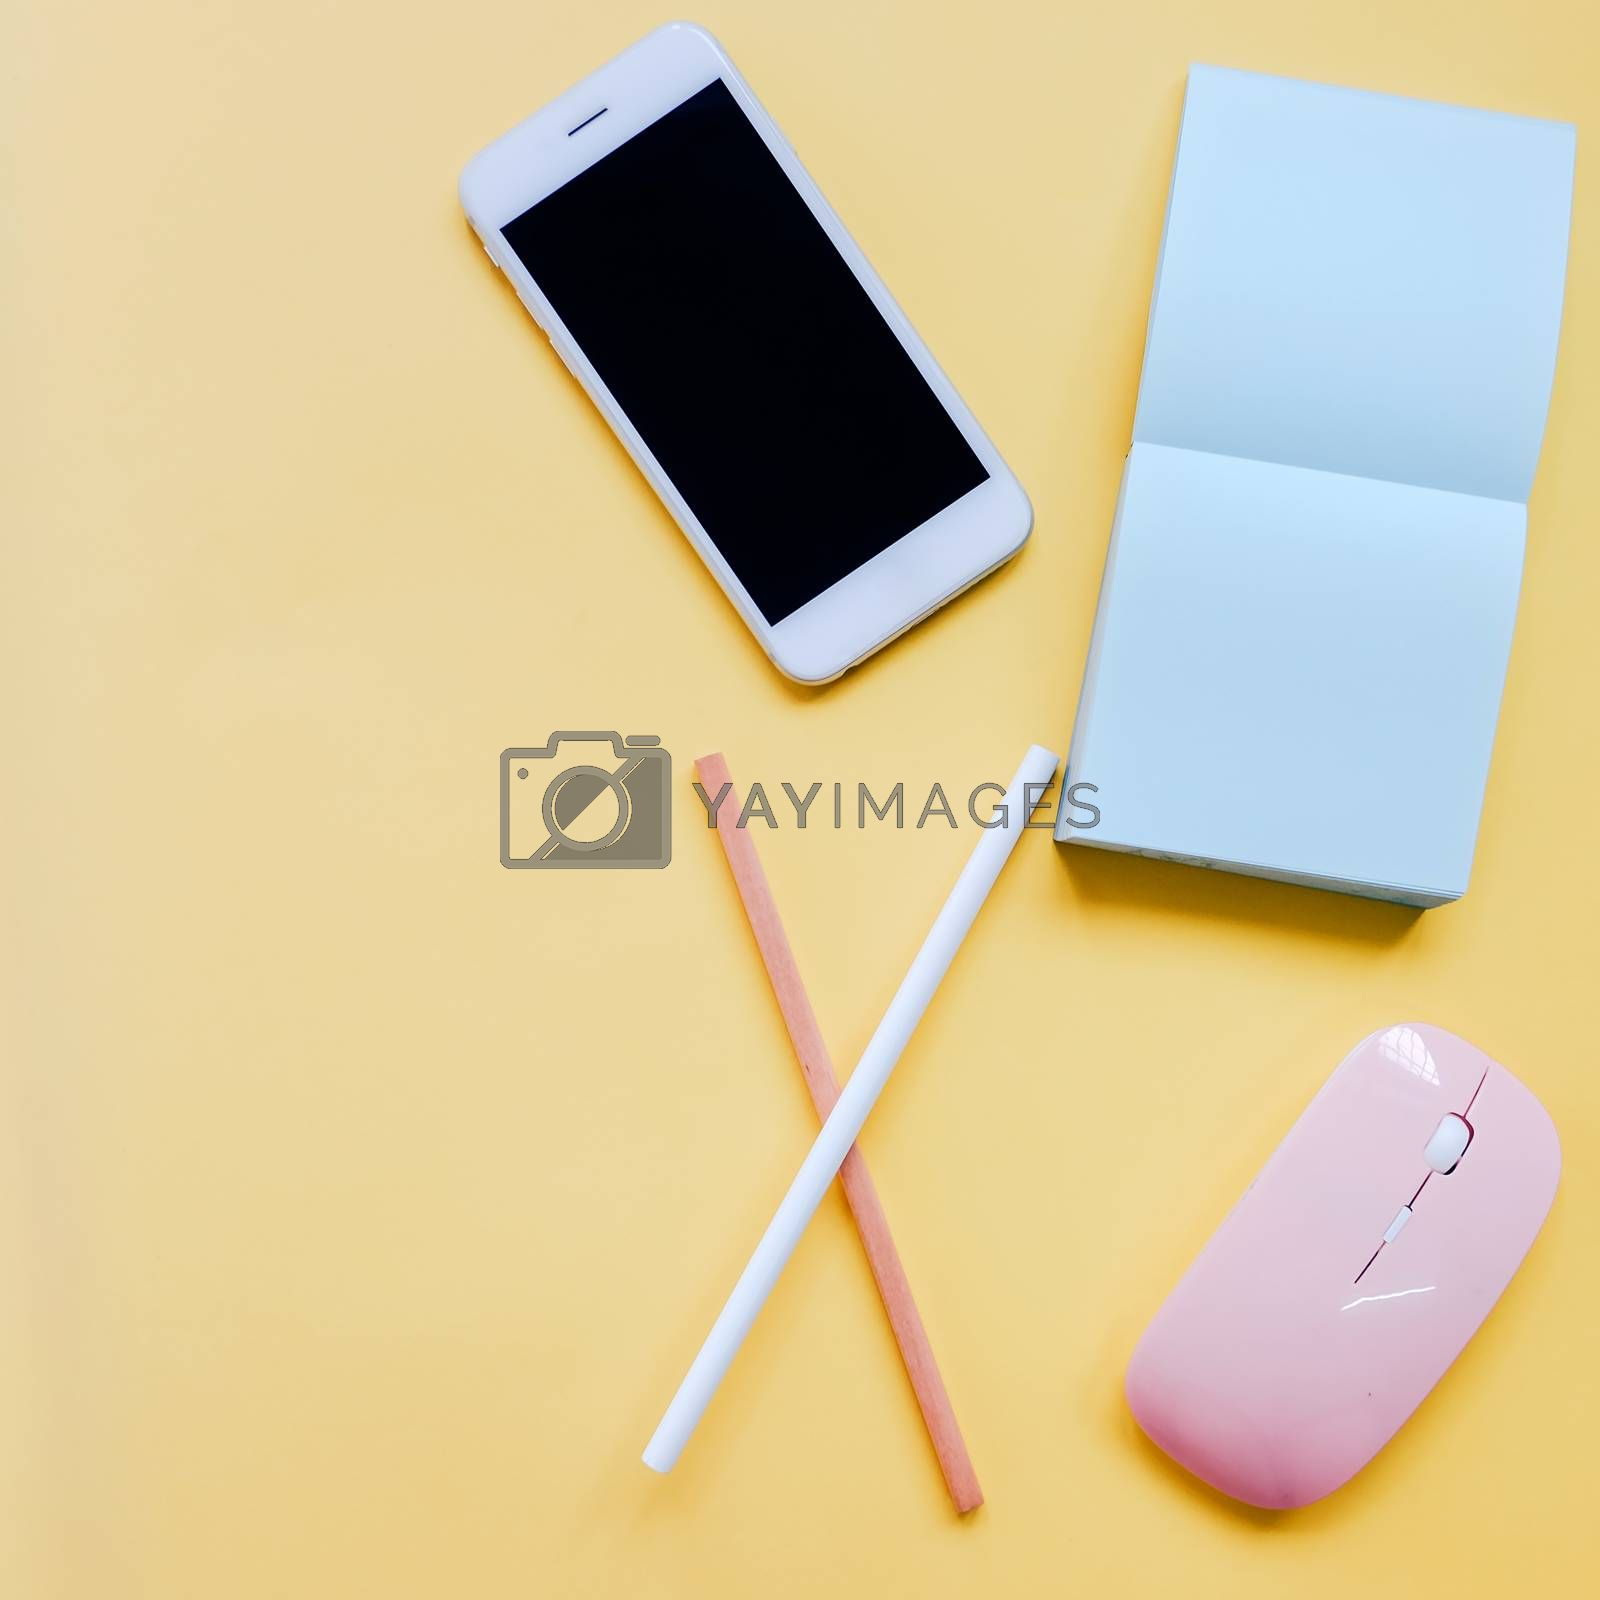 Royalty free image of Creative flat lay style workspace desk with smartphone, stationery, mouse and blank note on colorful background with copy space by nuchylee